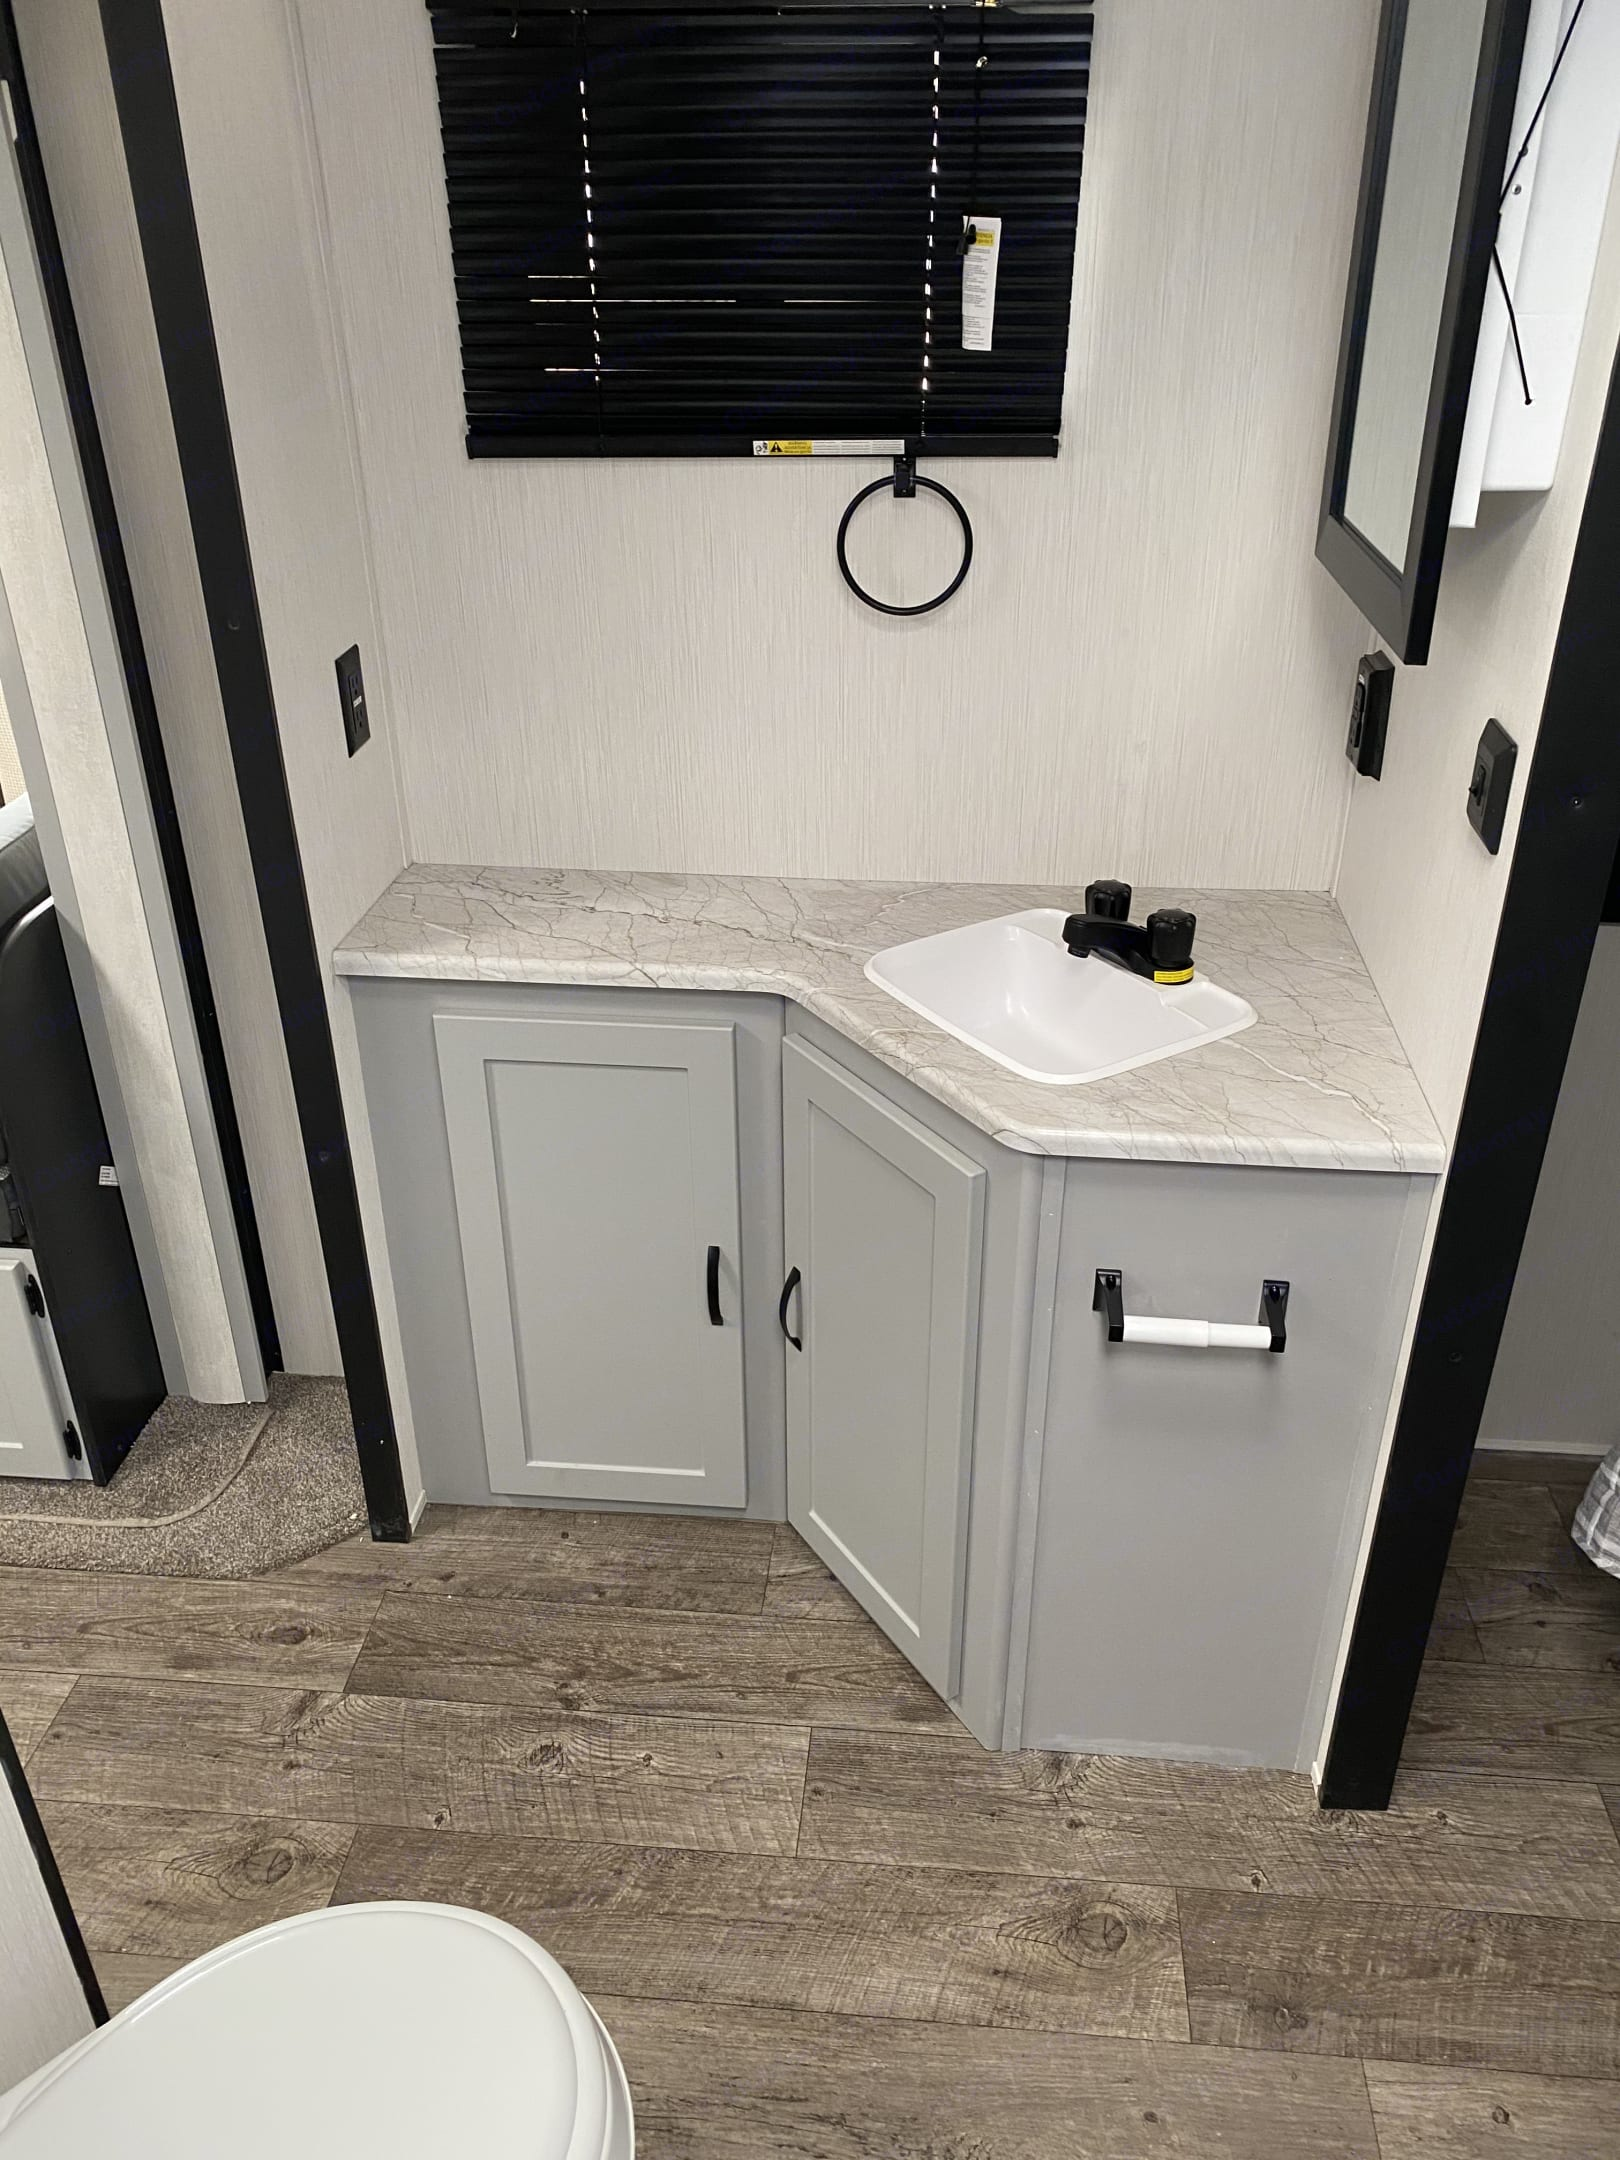 Plenty of counter space in the bathroom. . Forest River Vibe 2021